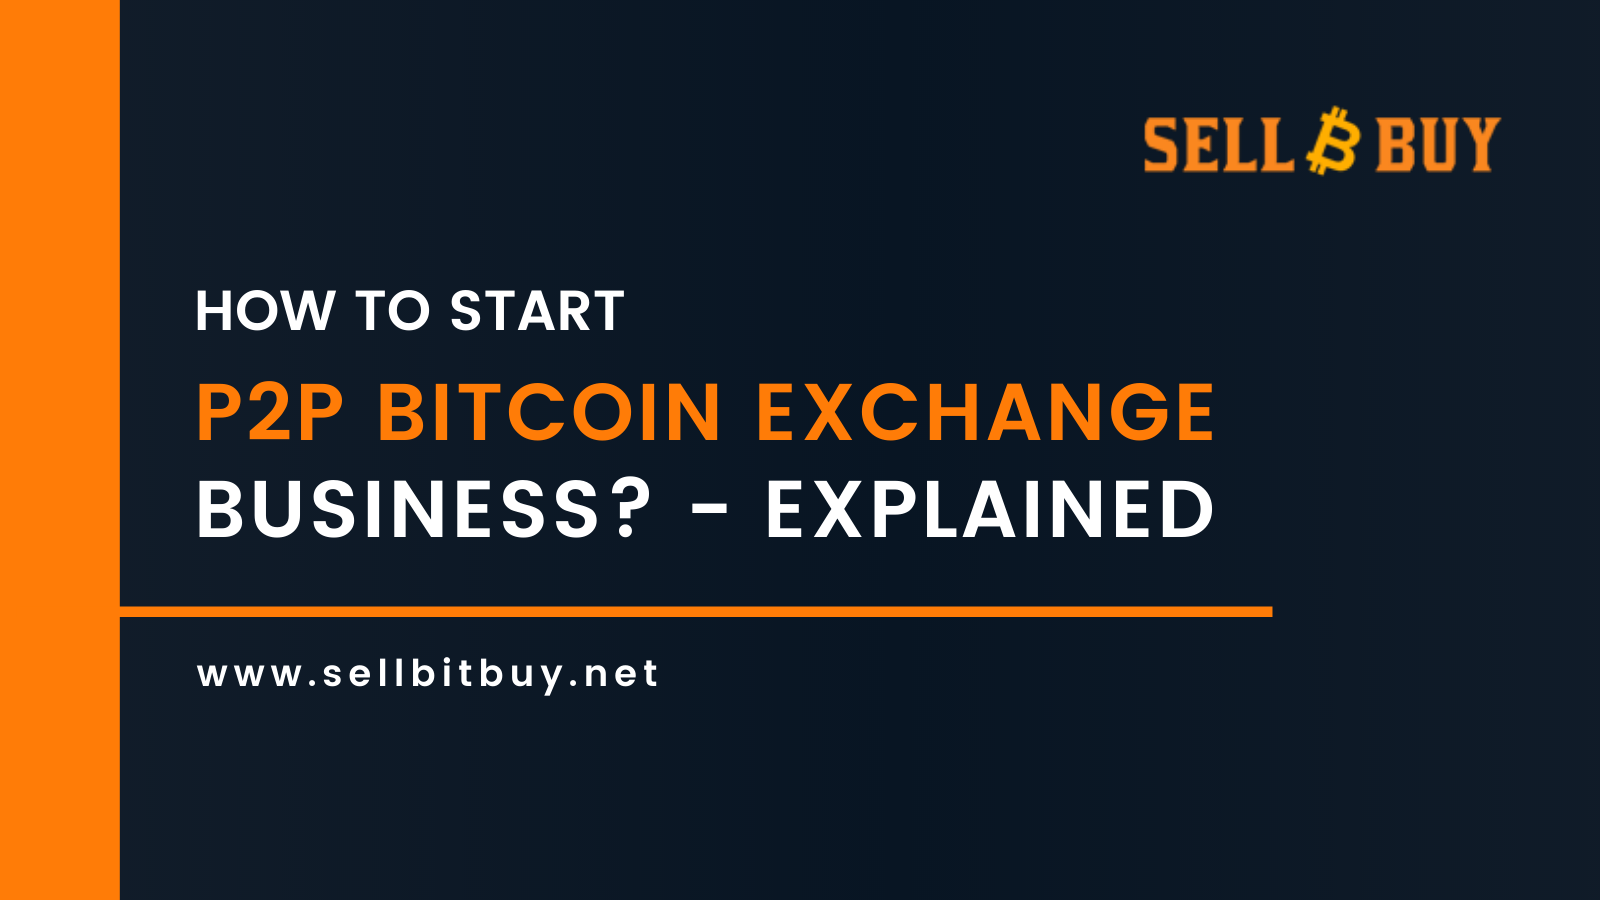 How do I start a Peer-to-Peer Bitcoin Exchange Business?